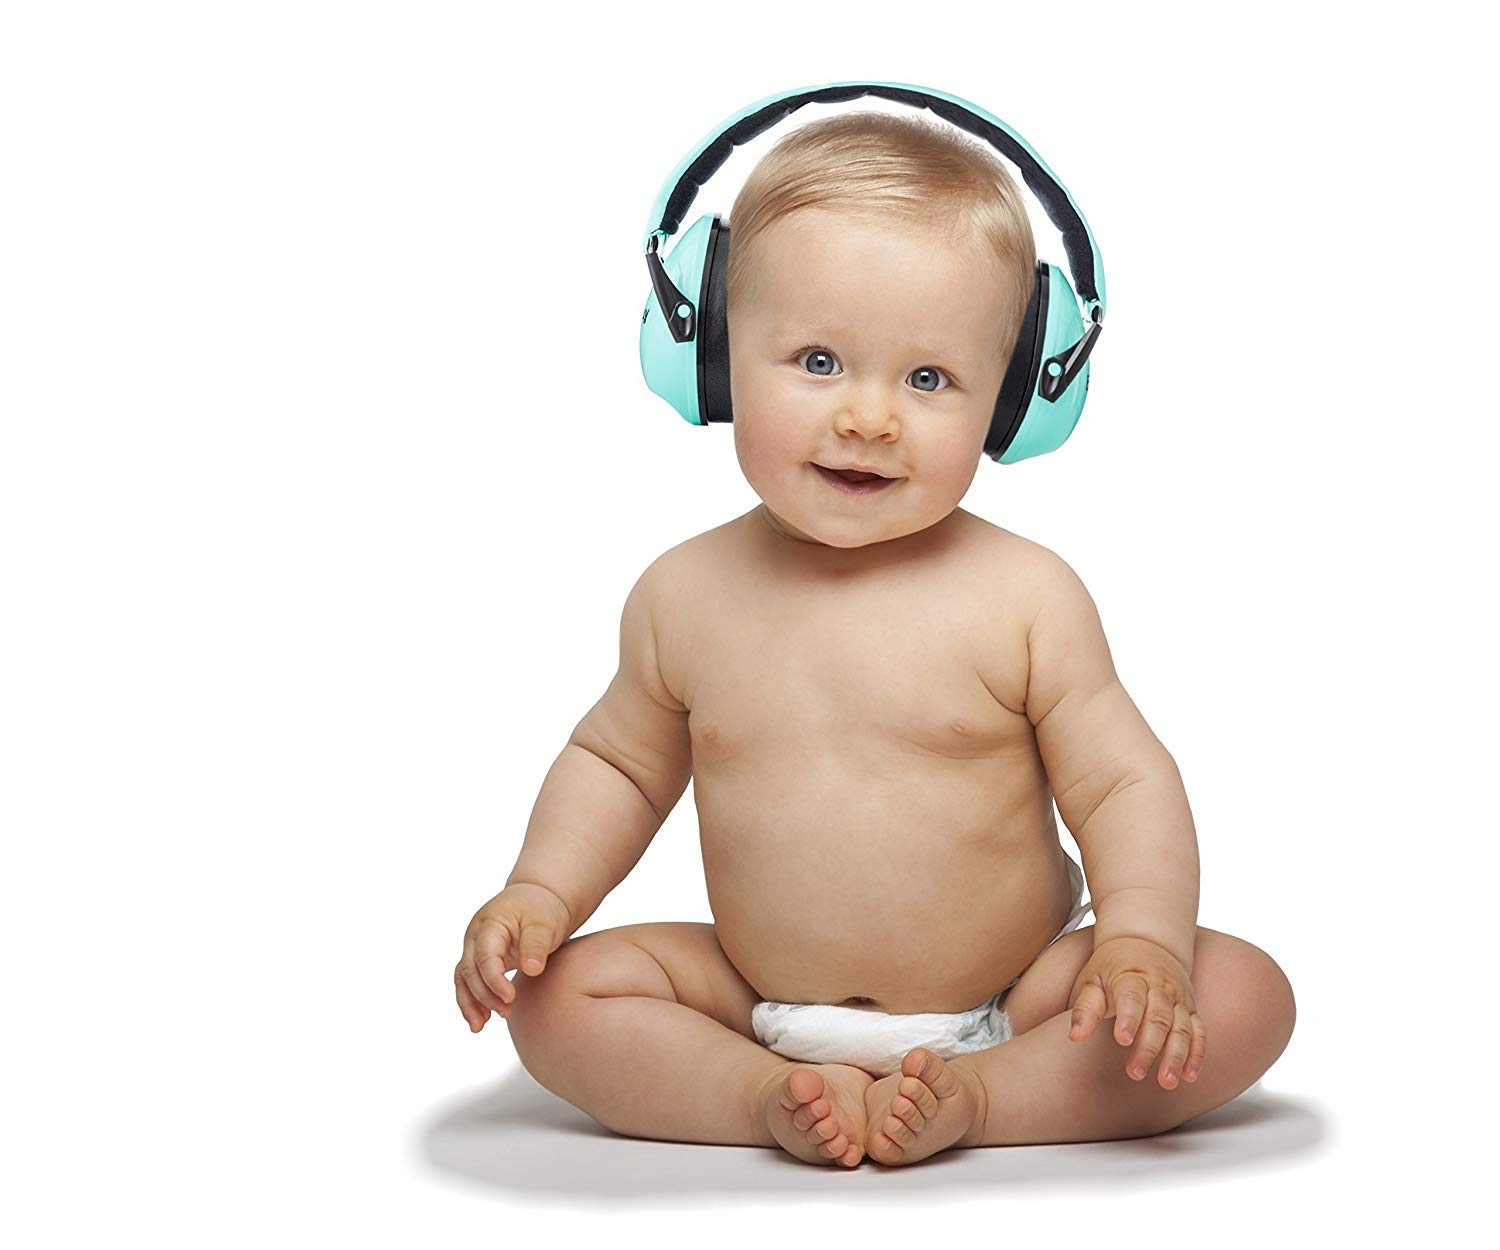 Premium Baby Ear Muffs by Exceedbuy -Unisex Hearing Protection Noise Cancelling Headphones from 12 Months Toddler Boys & Girls up to 12 Years -Travel Bag and 2 Pairs of Baby Ear Plugs Included